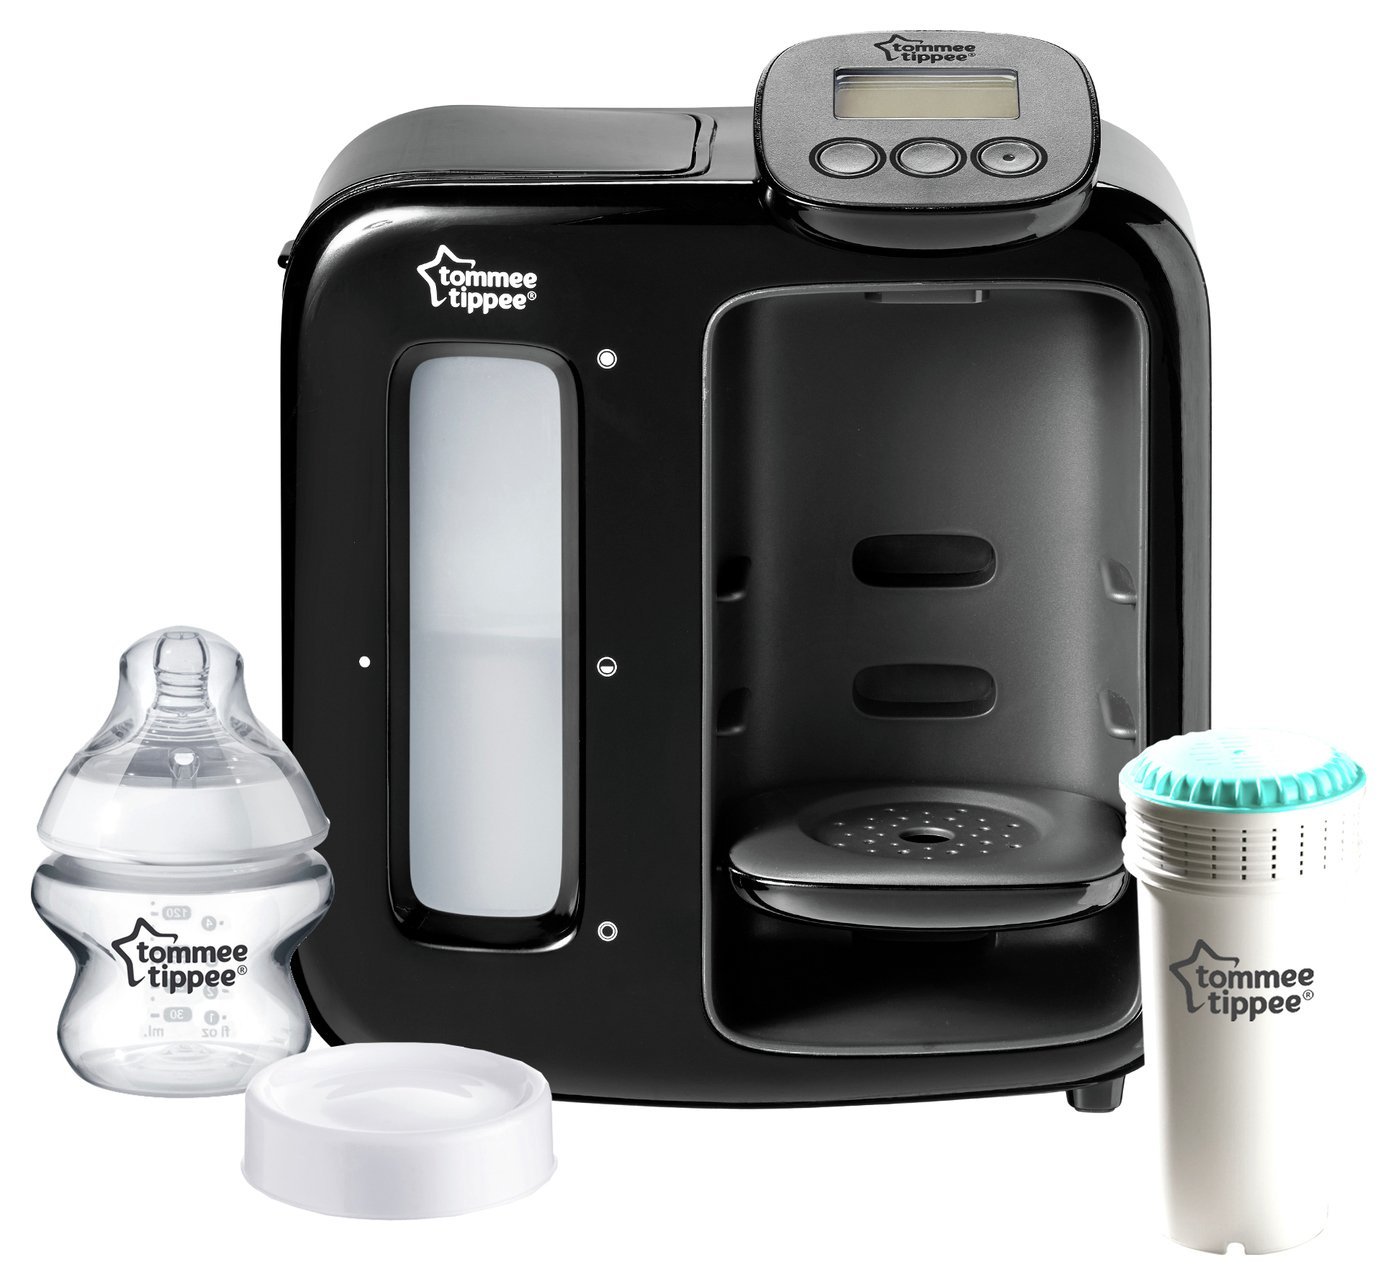 Image of Tommee Tippee Perfect Prep Day & Night - Black